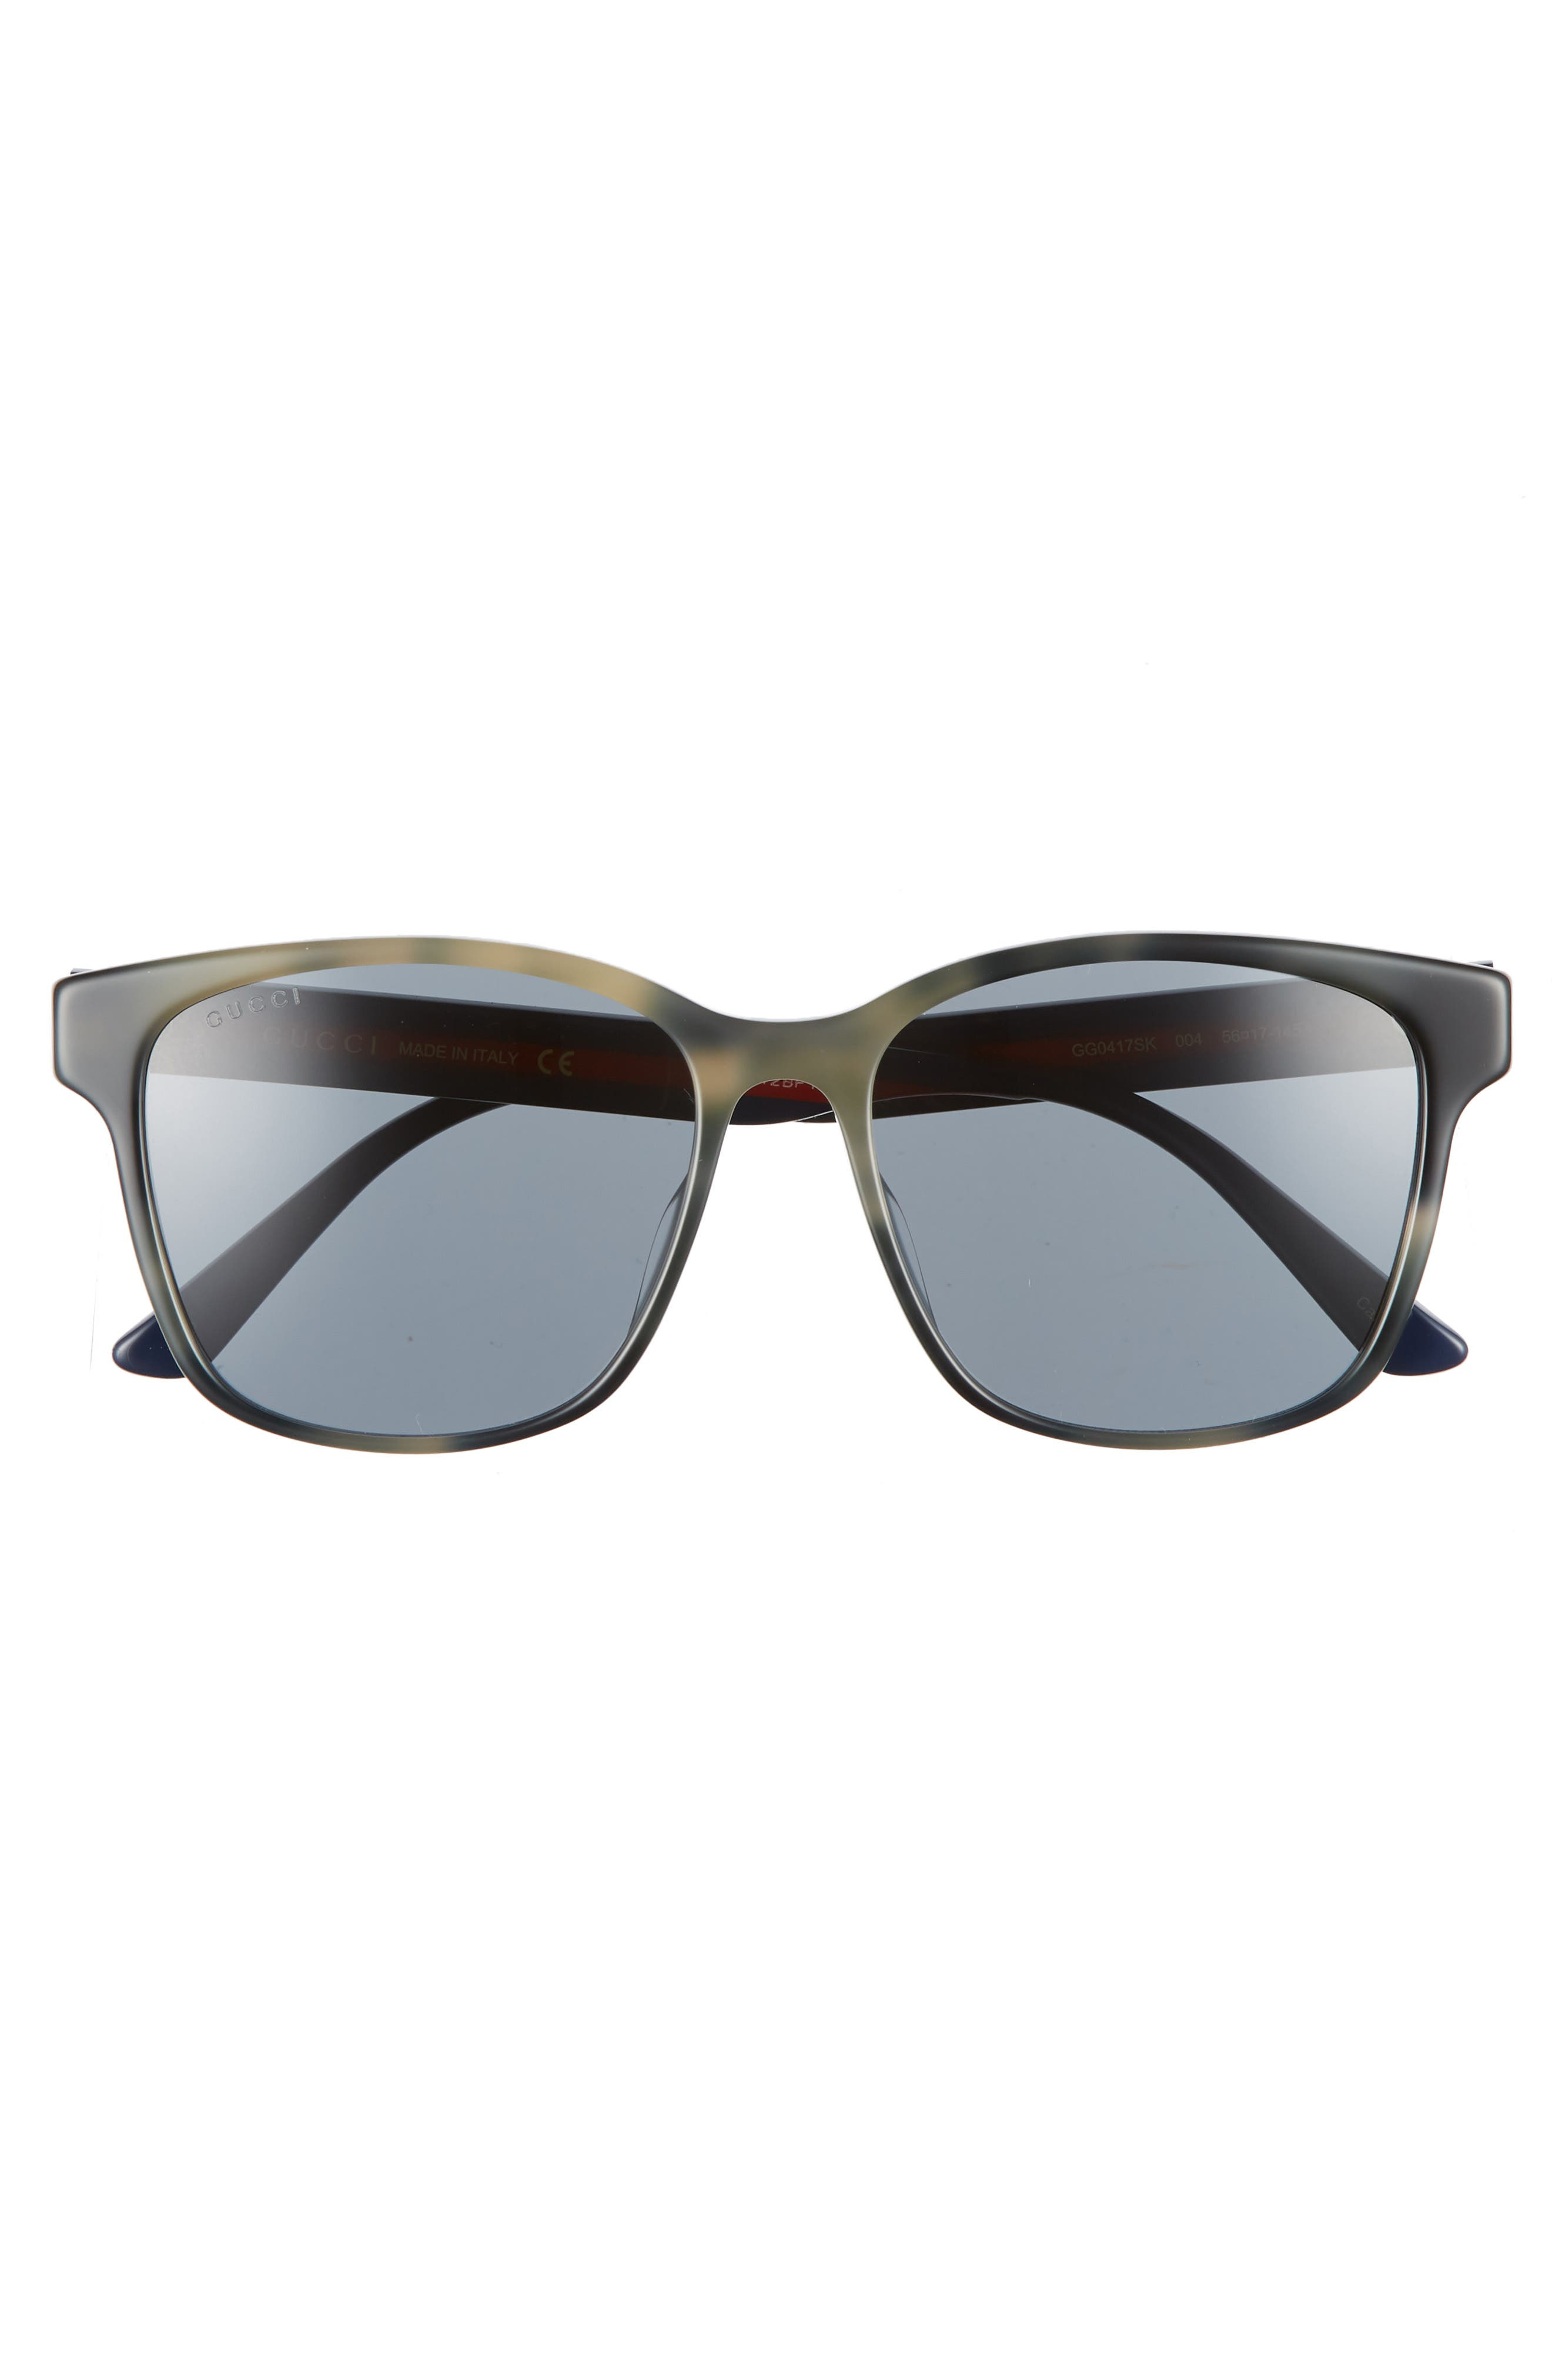 GUCCI, 56mm Square Sunglasses, Alternate thumbnail 2, color, GREY HAVANA